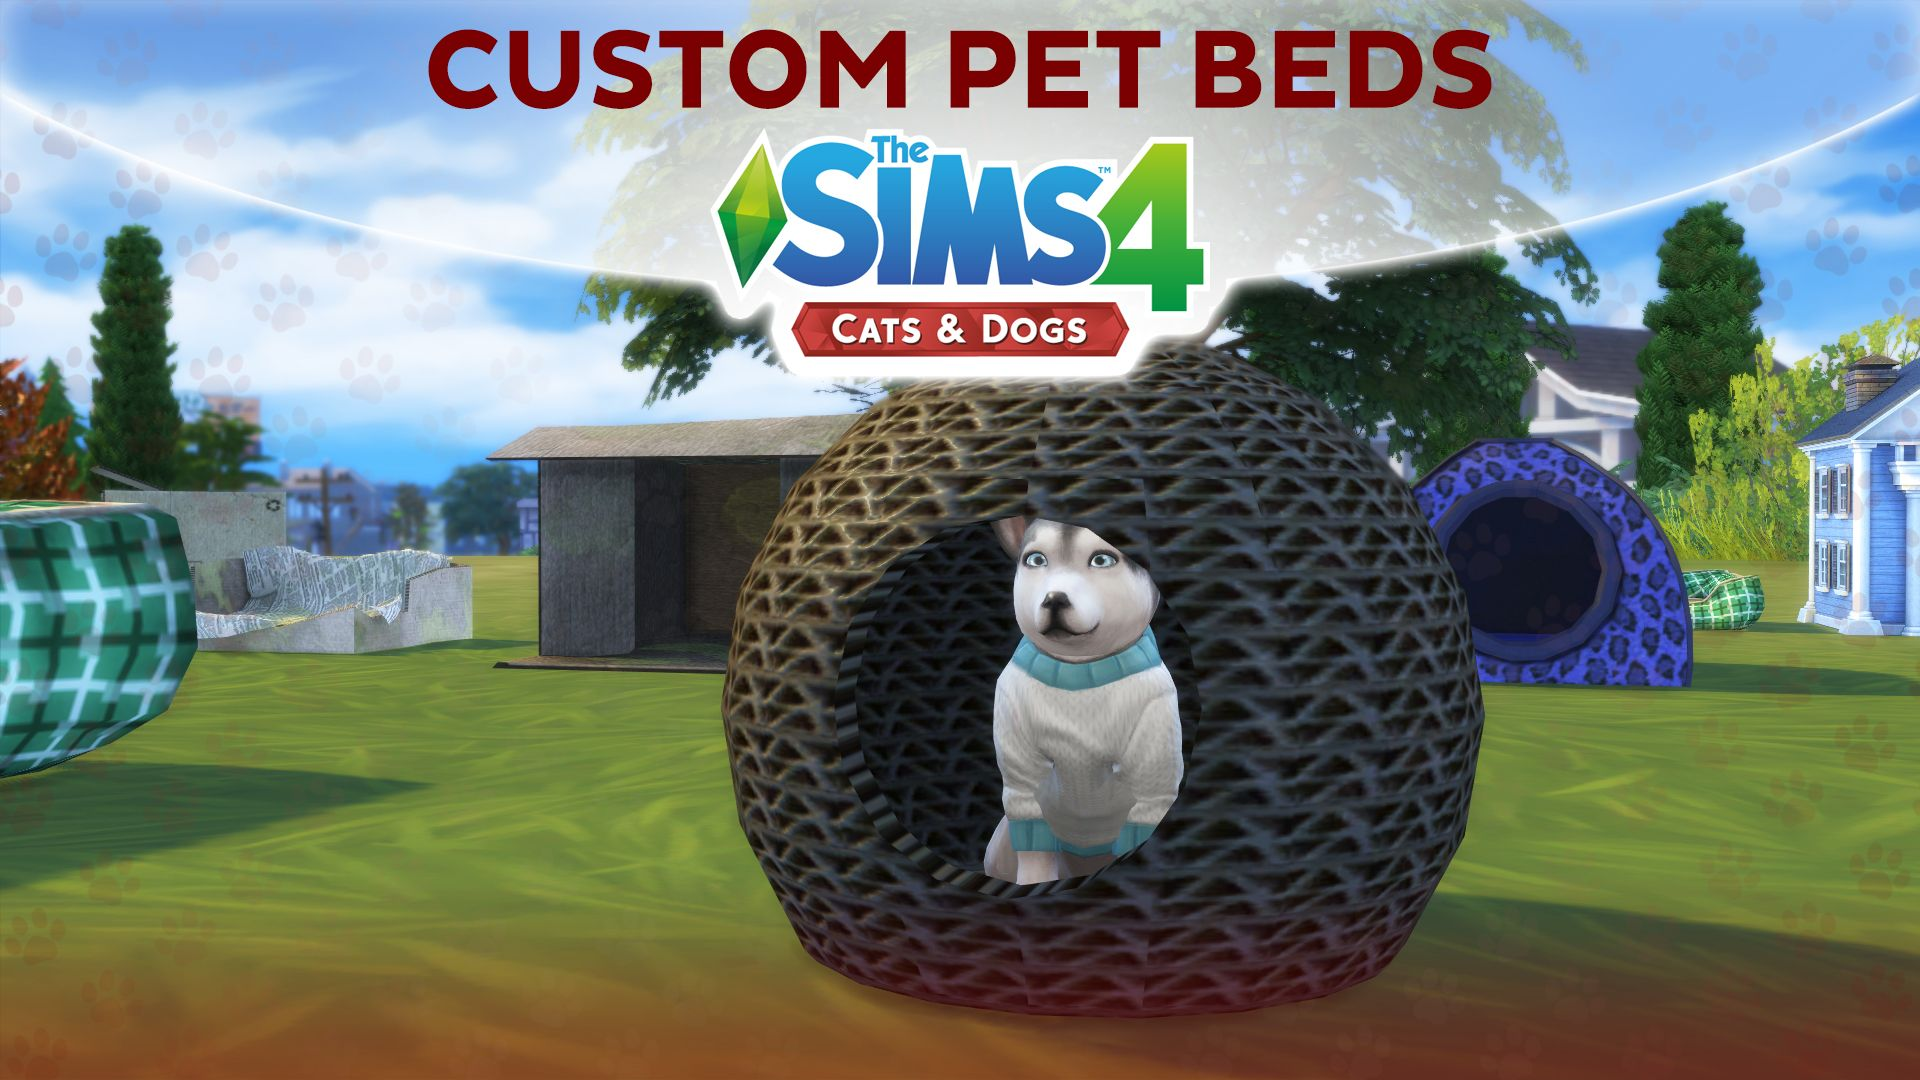 The Sims 4 Cats Dogs Custom Pet Beds And Pet Houses Sims Pets